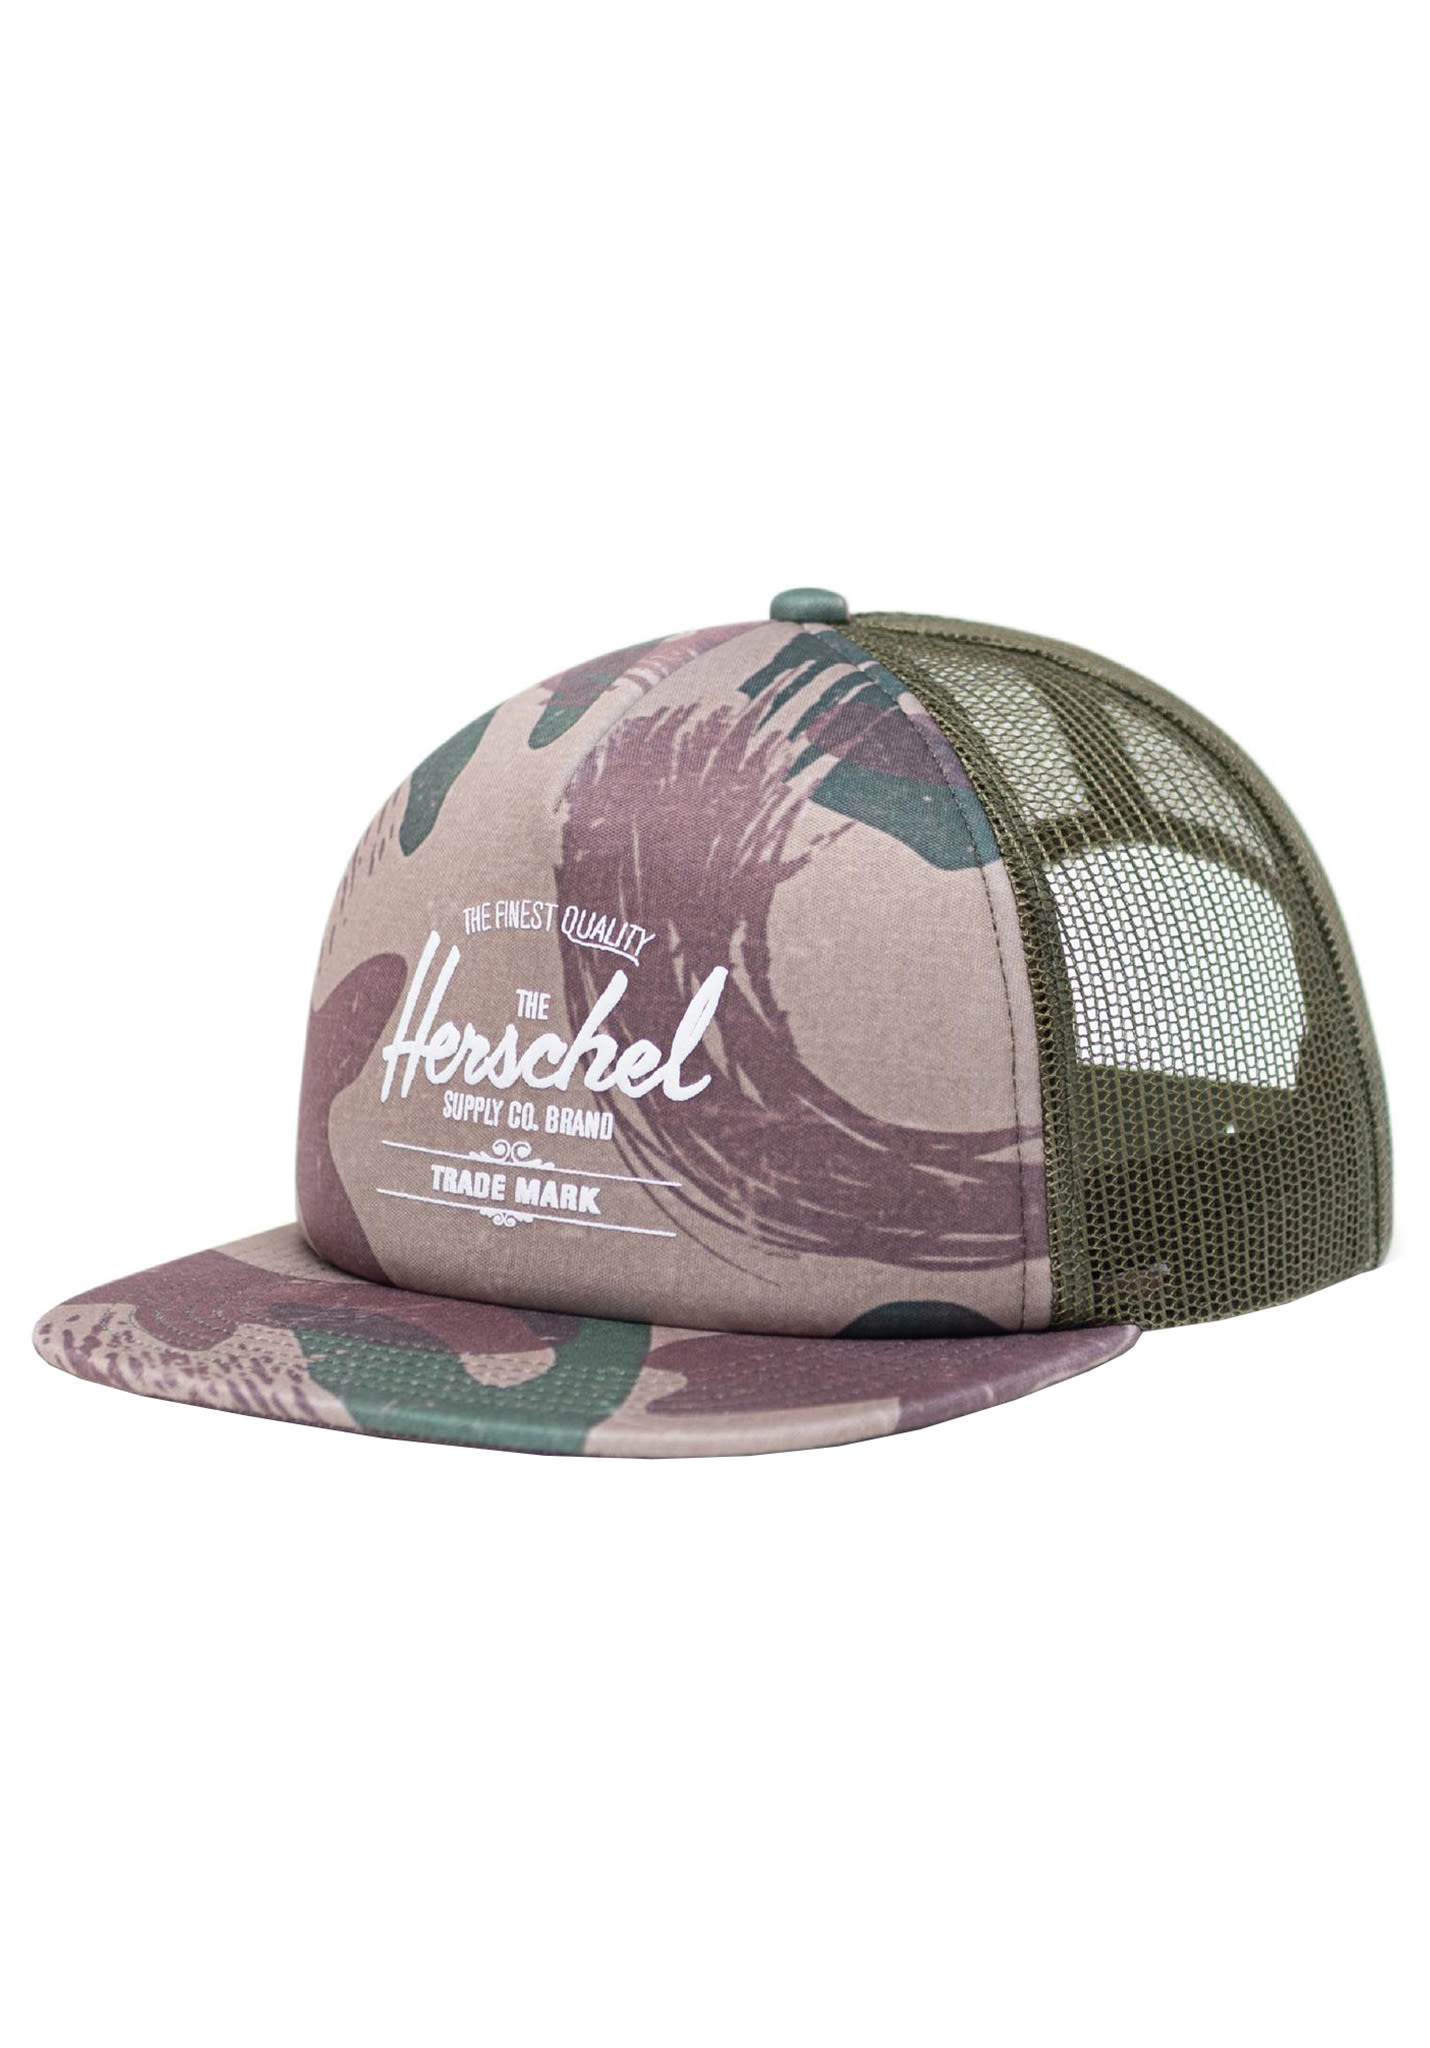 6c373492af968 Herschel SUPPLY CO Whaler Mesh - Trucker Cap - Camo - Planet Sports